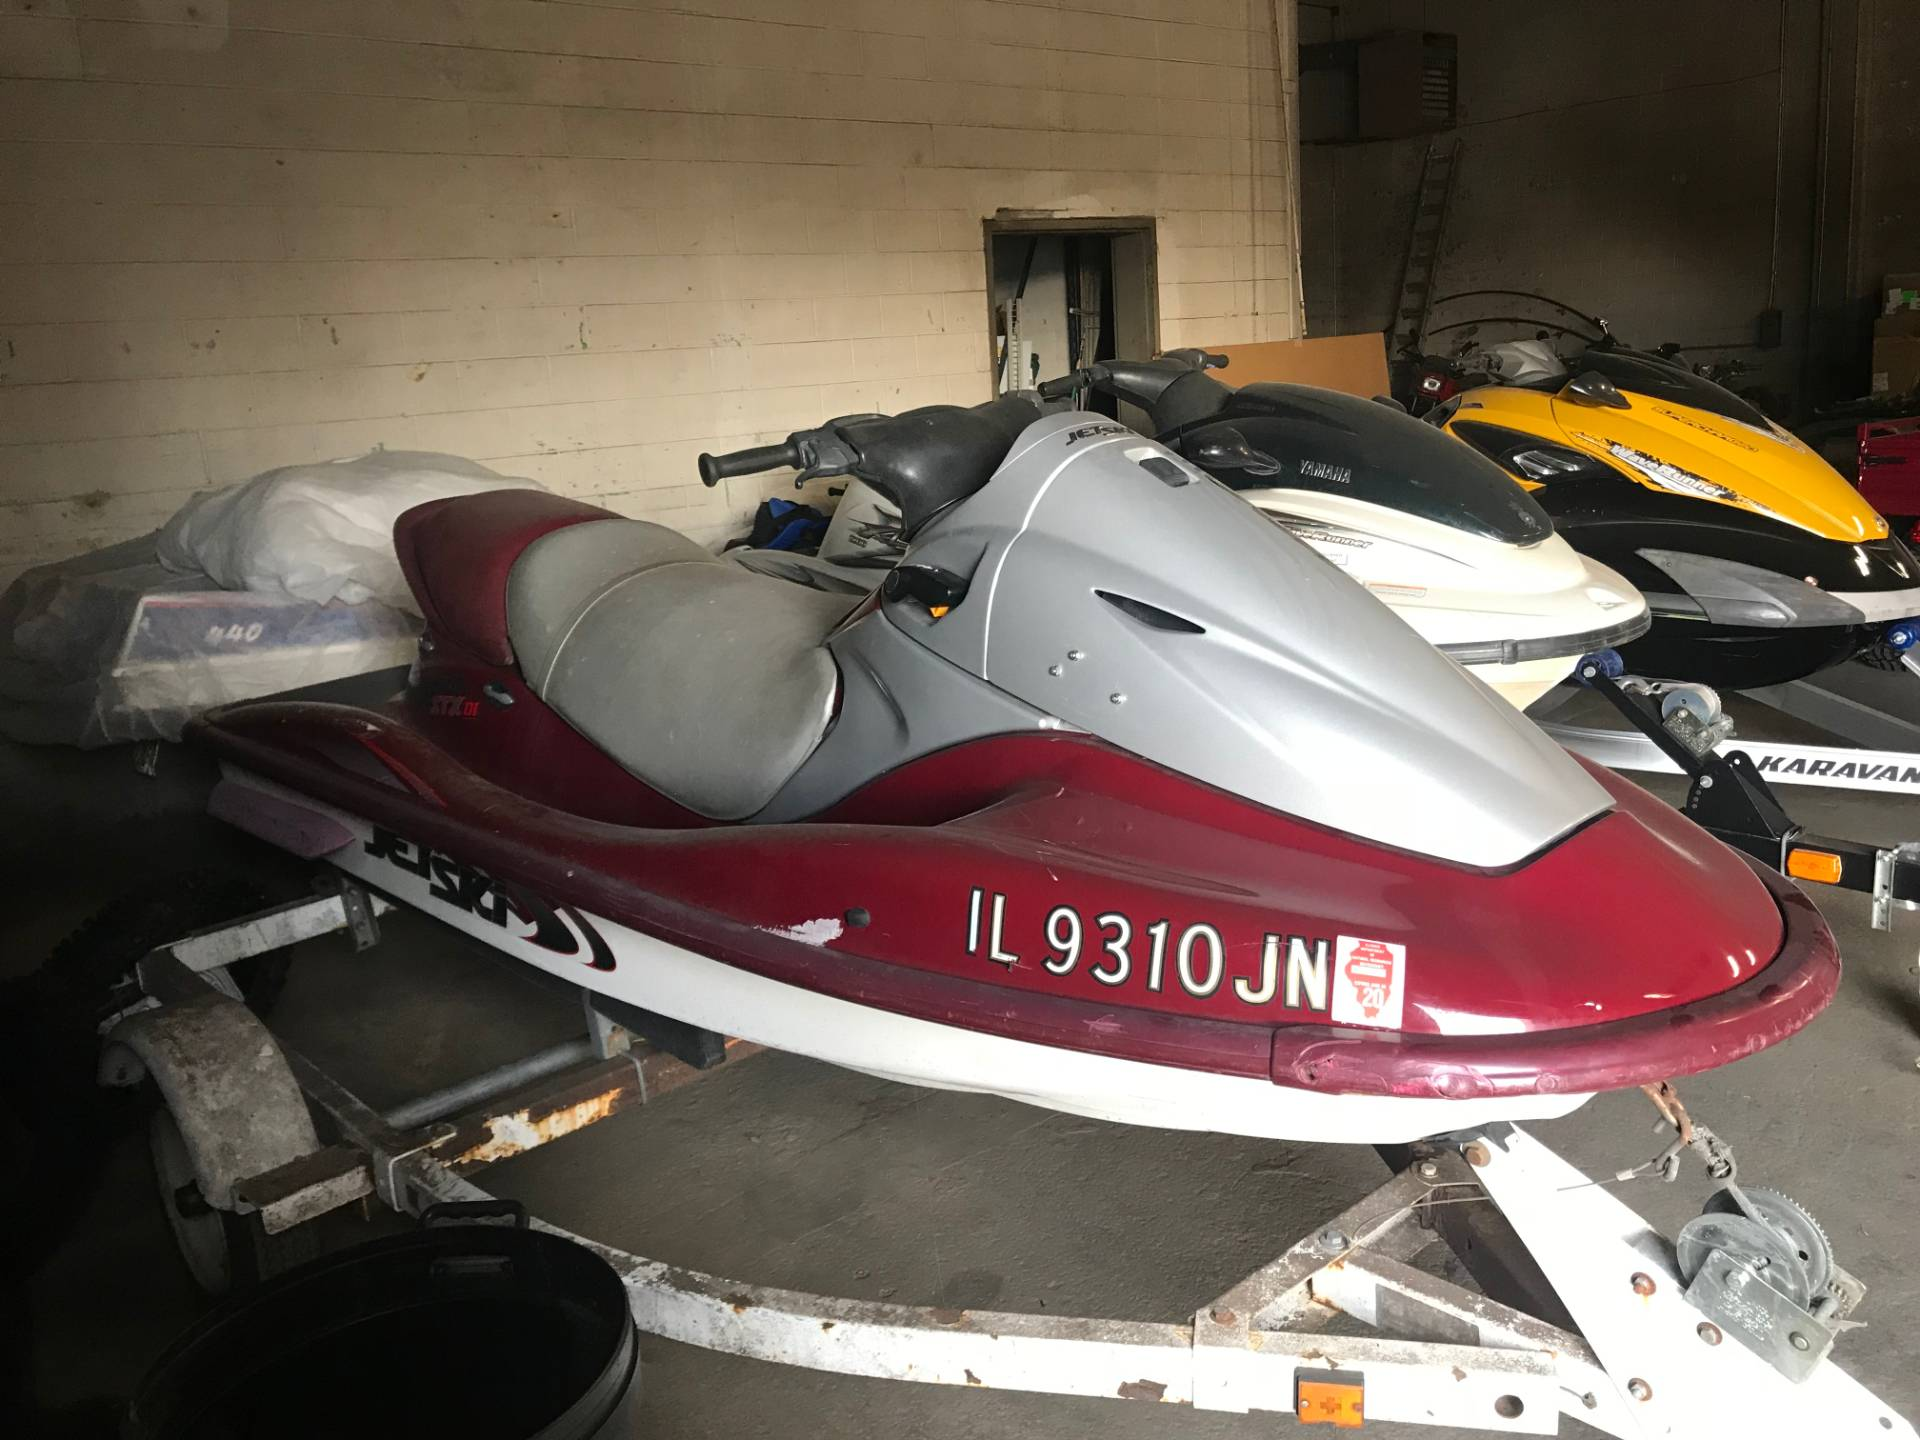 2000 Kawasaki JET SKI 1100 STX DI Watercraft in Rock Falls, Illinois - Photo 1